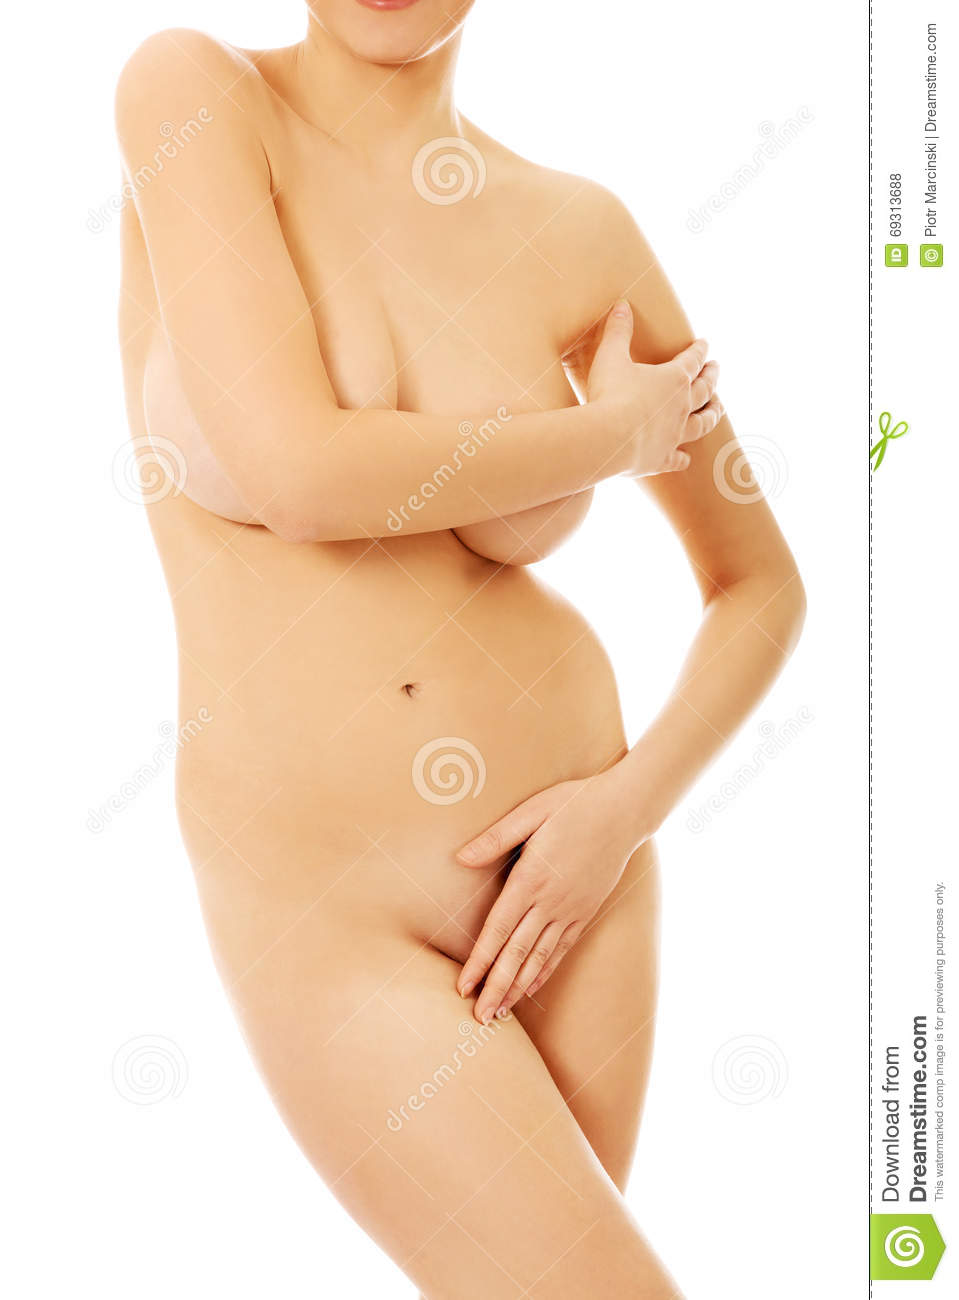 nude-woman-covering-herself